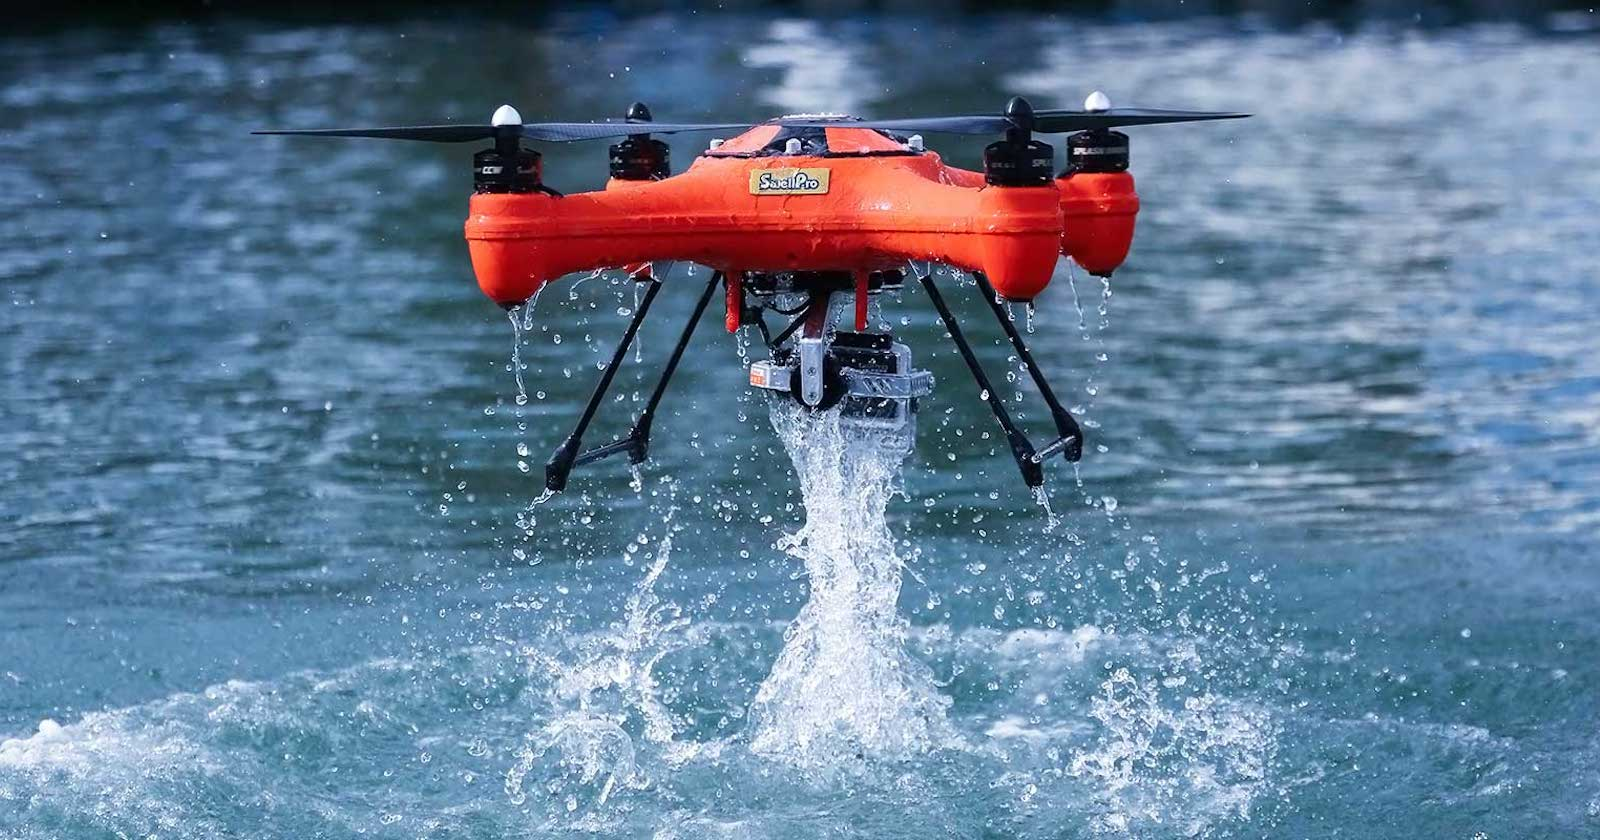 Purchase Drone 2018 Article Image 1